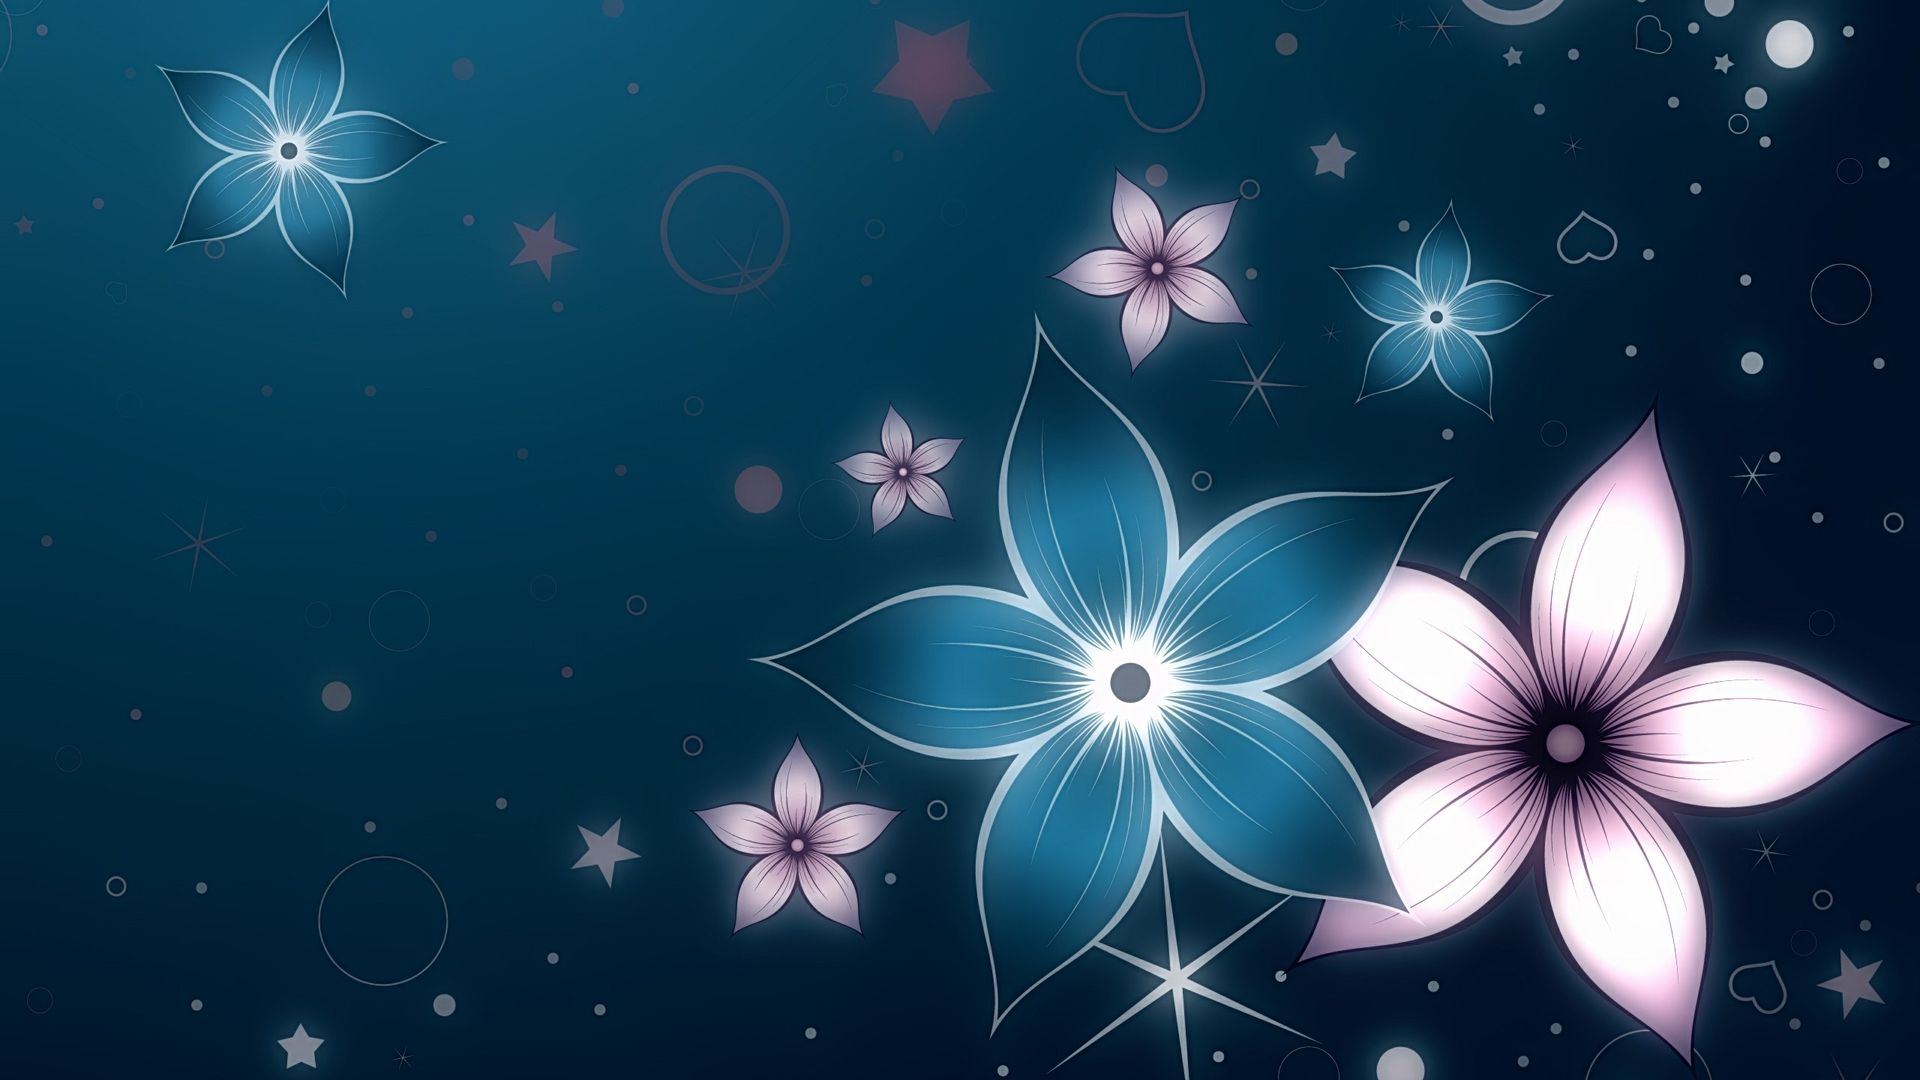 Vector Blue Flowers Wallpapers and Free Stock Photos Visual